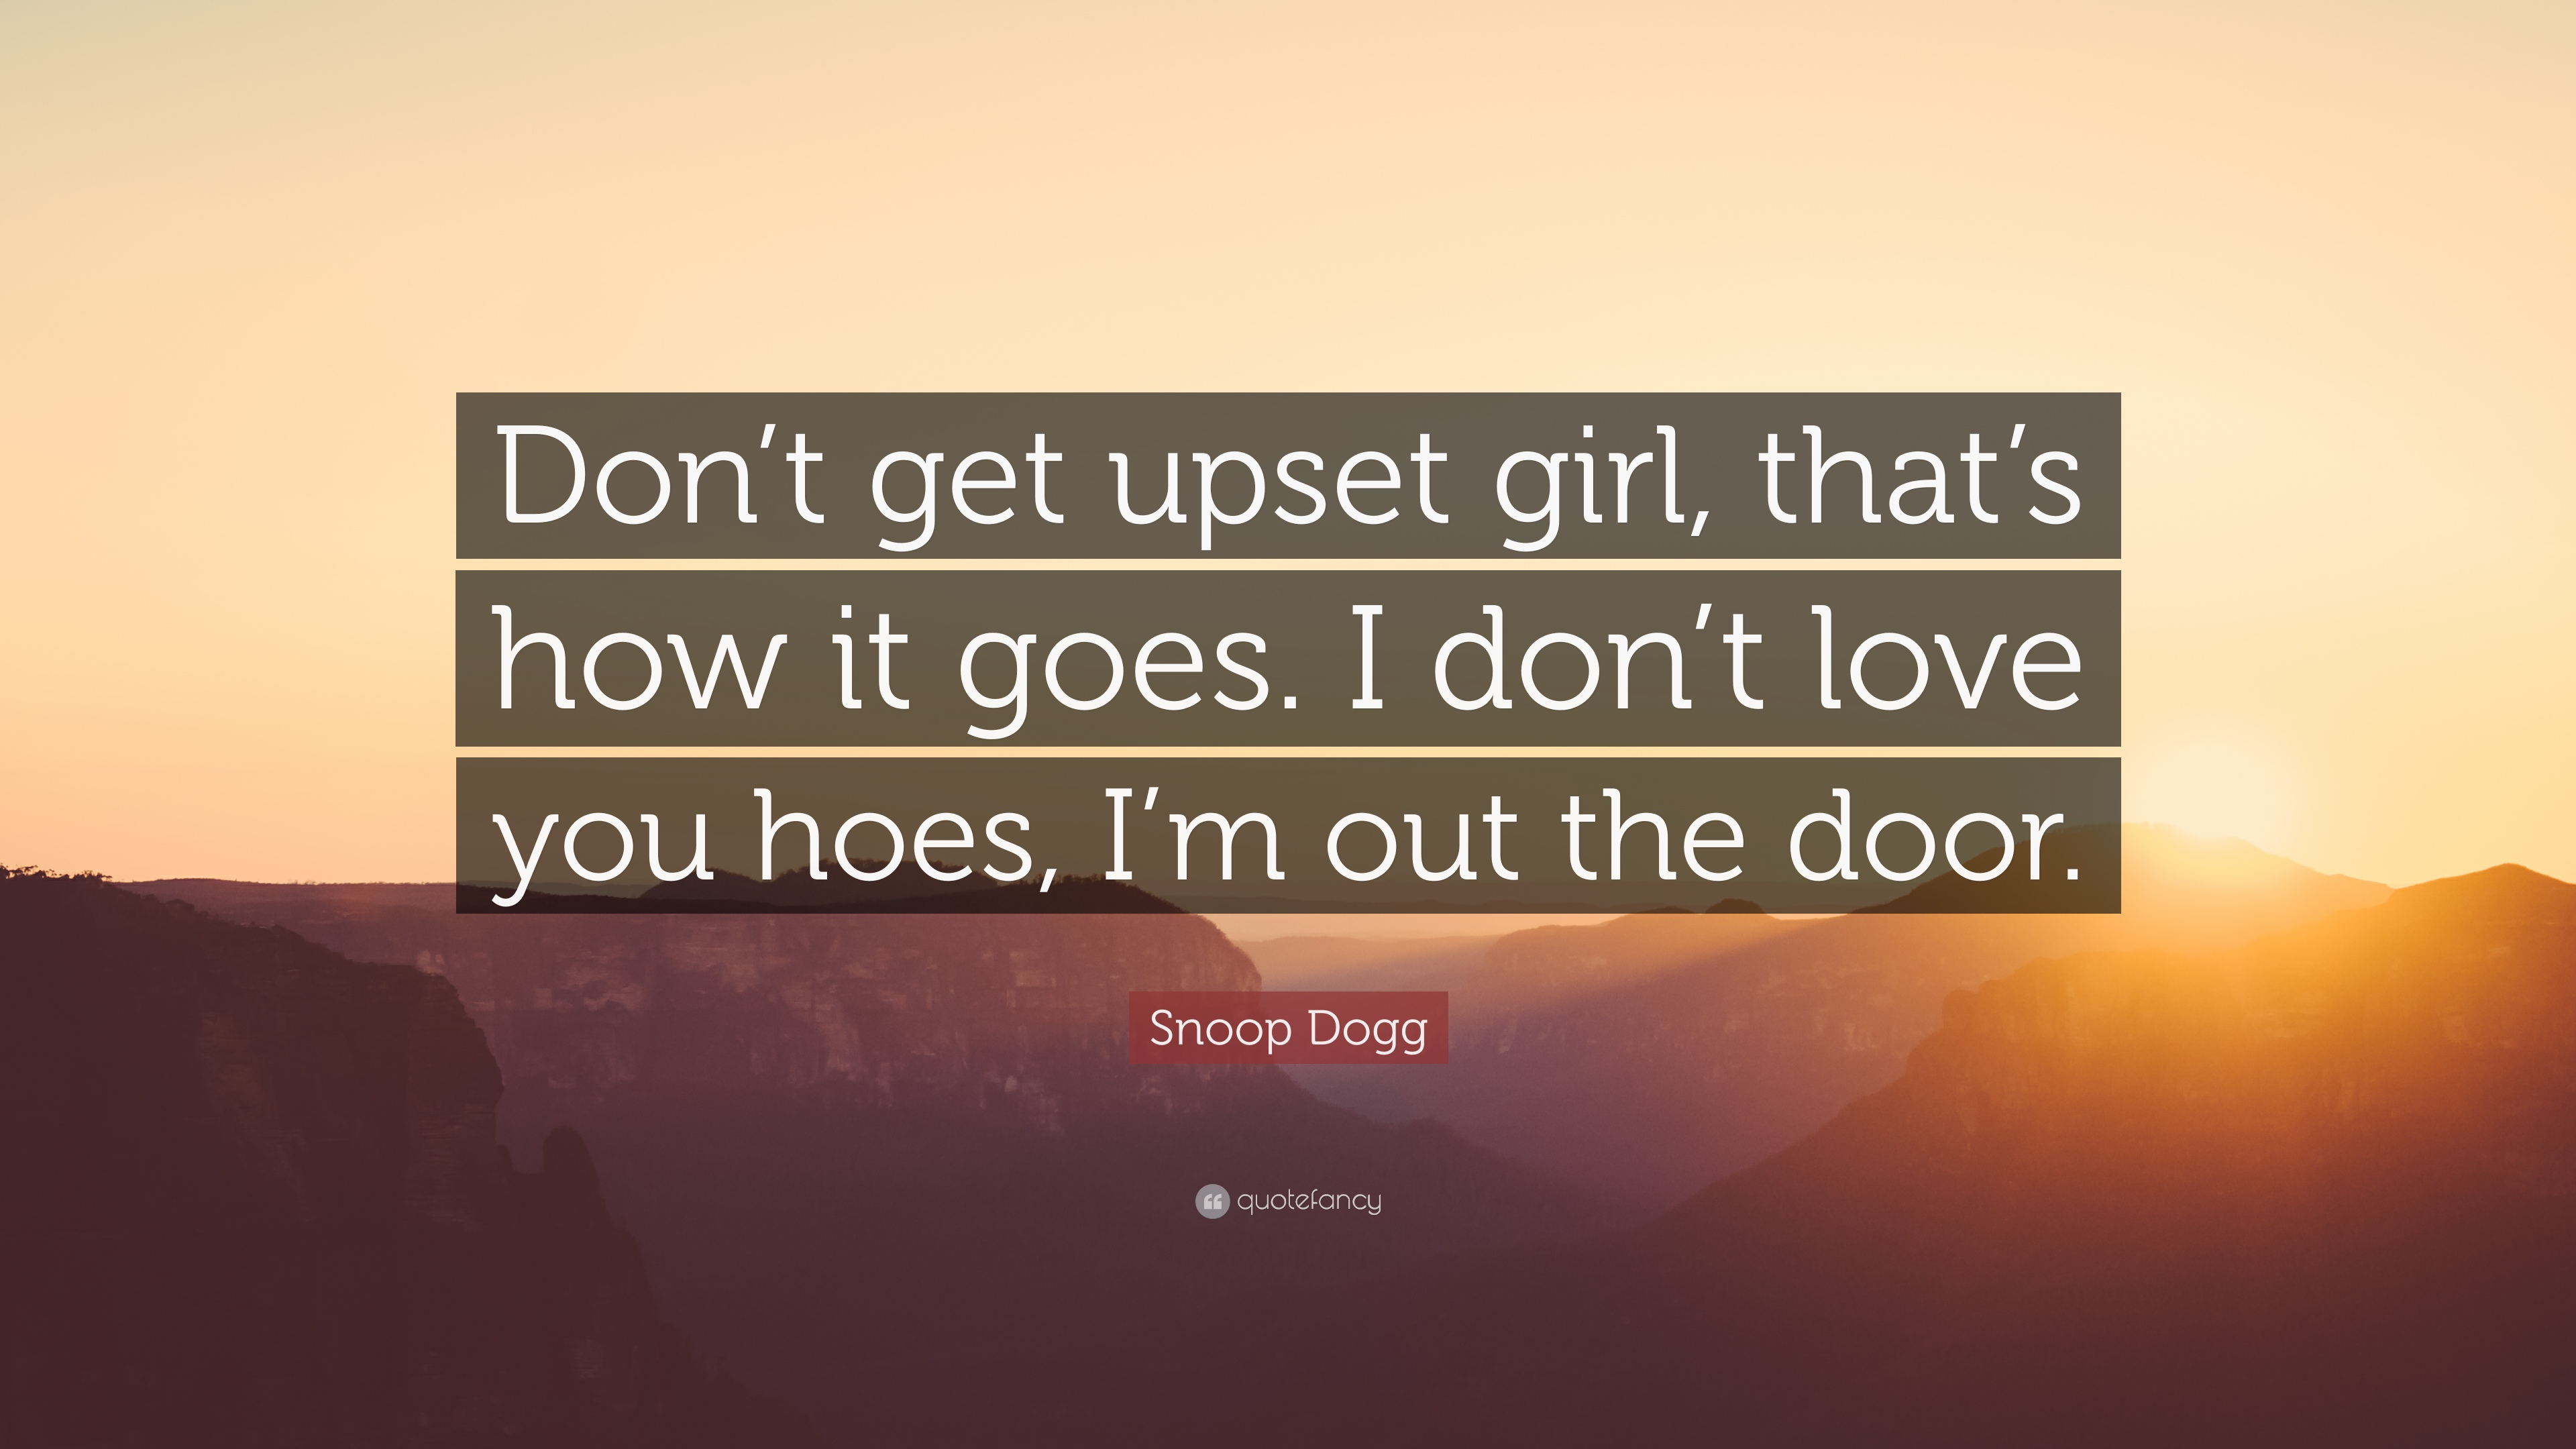 Best Snoop Dogg Quotes: Love Door Quotes & Sc 1 St Nsidimmomes.gq